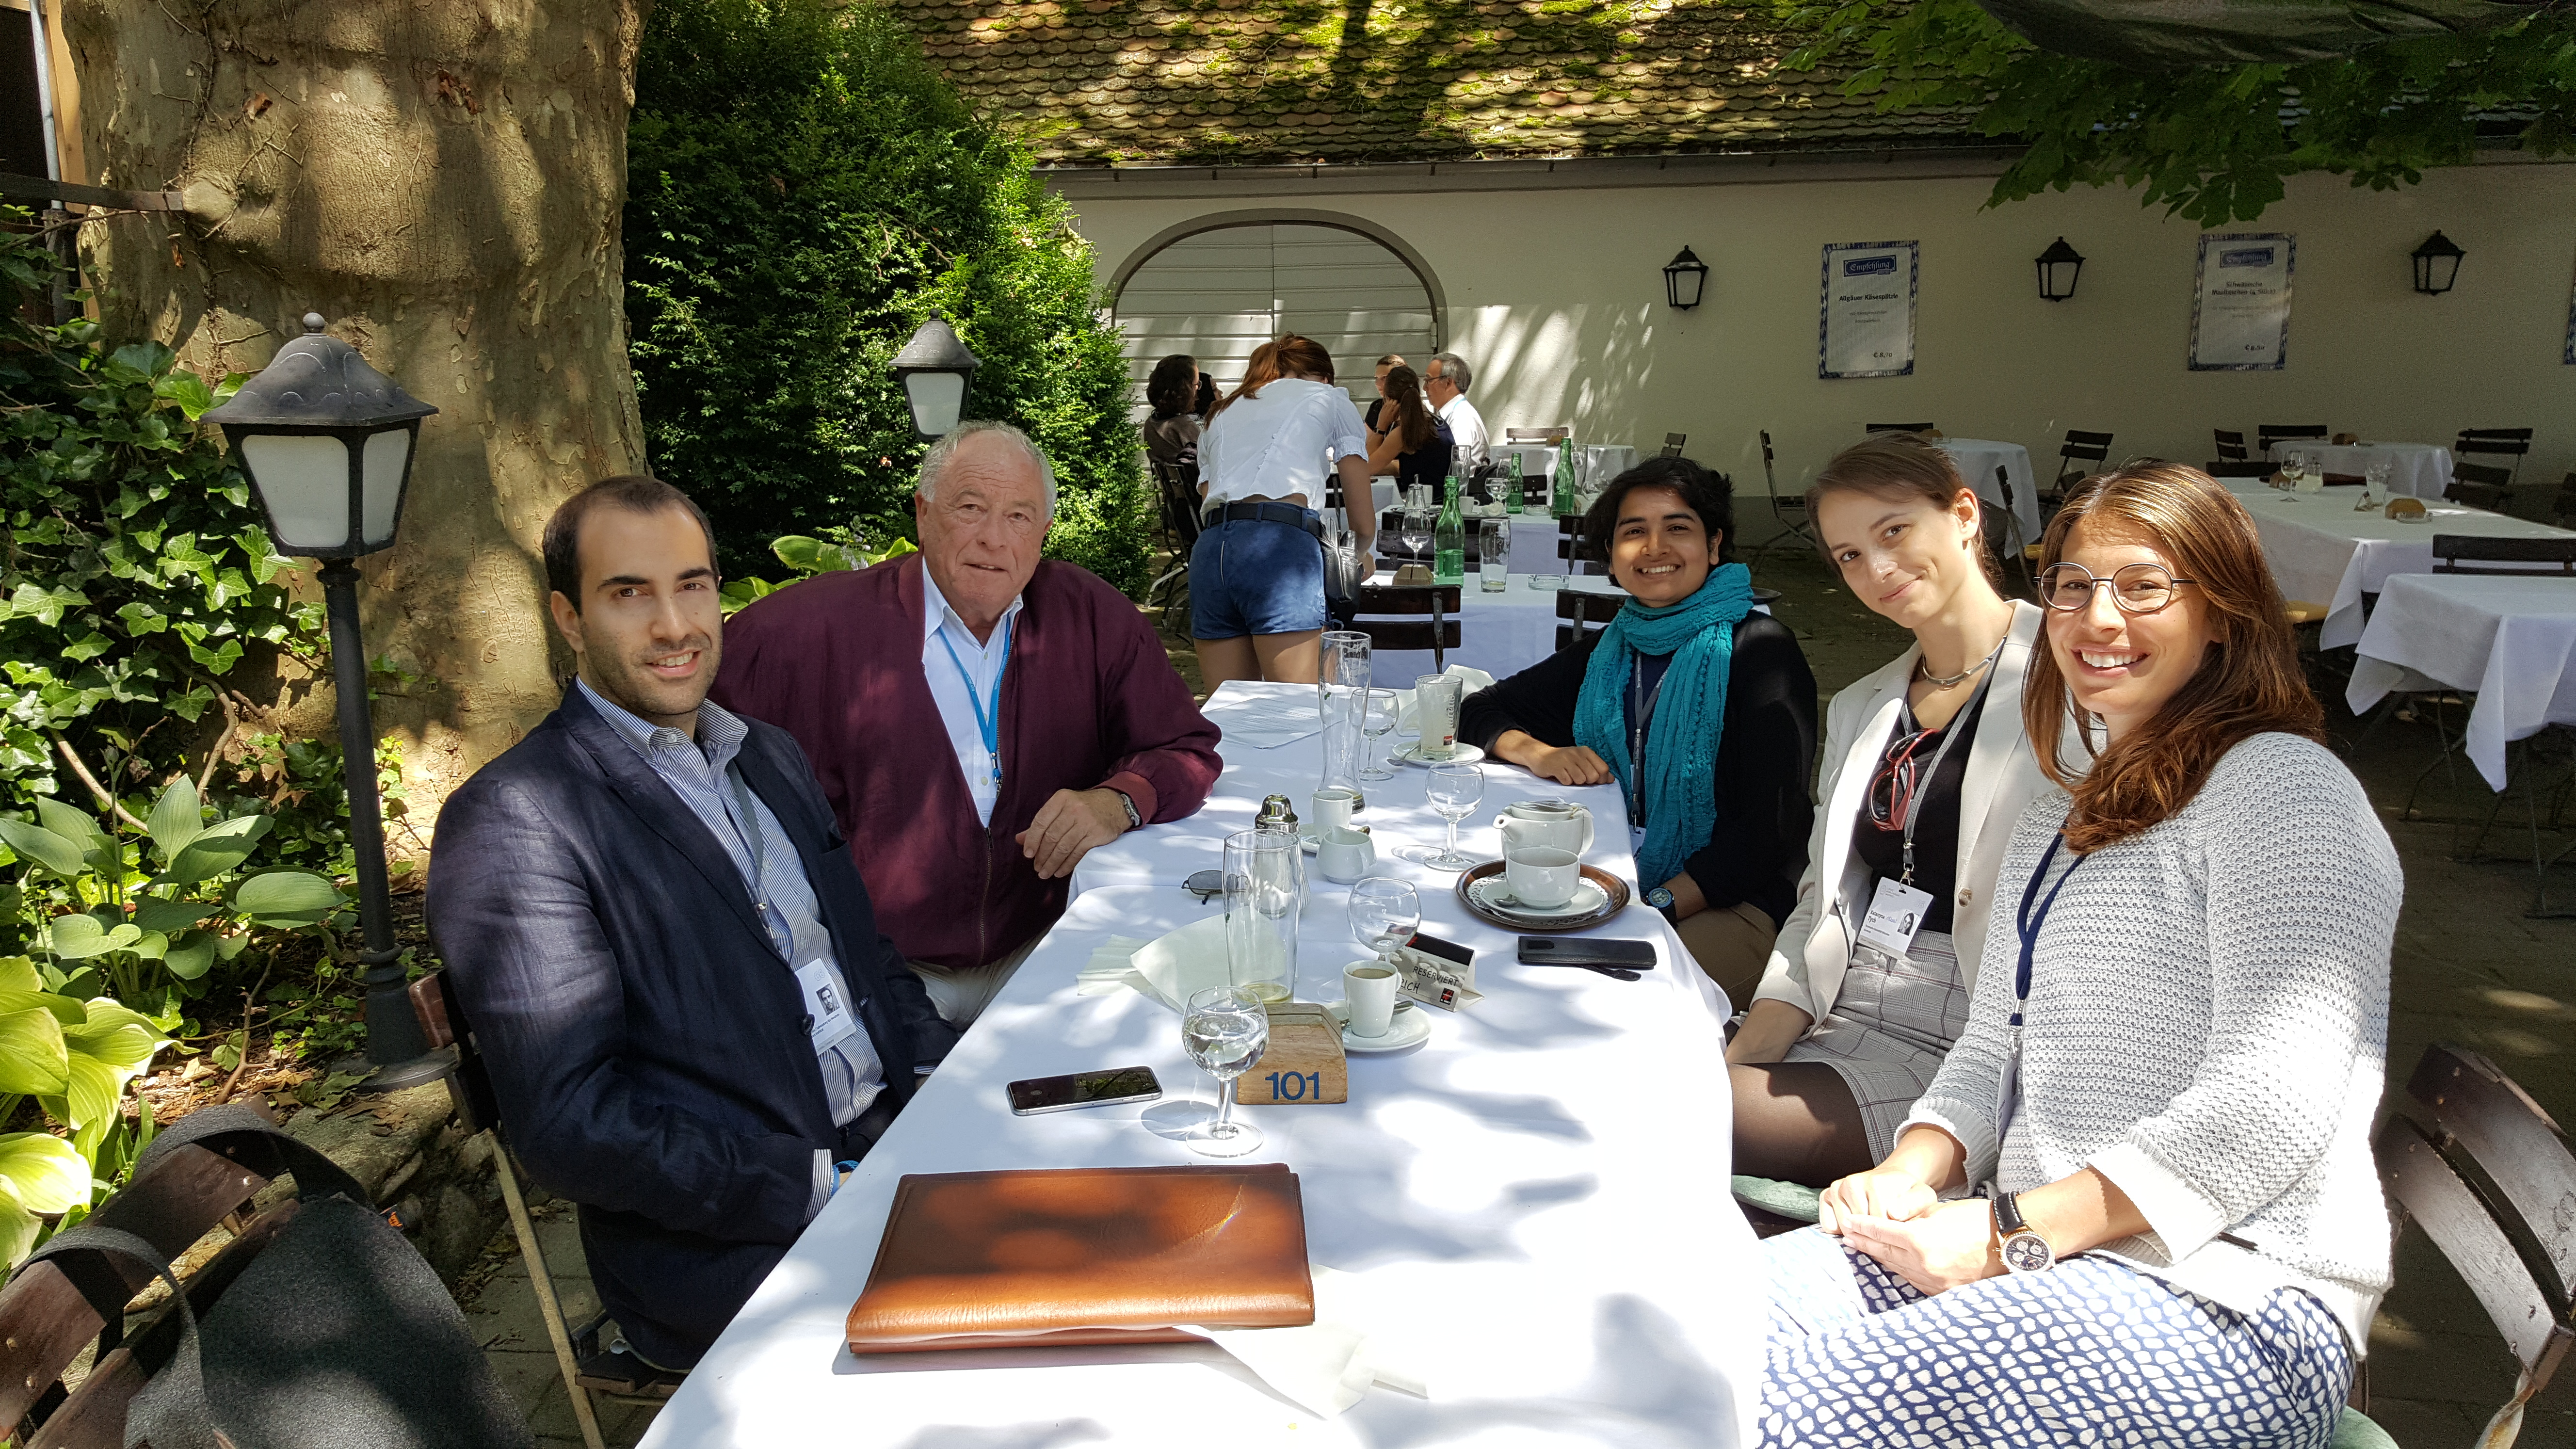 Katarzyna Tych (second from right) with other #LiNo16 participants and Nobel Laureate Kurt Wüthrich (second from left) in a German beer garden